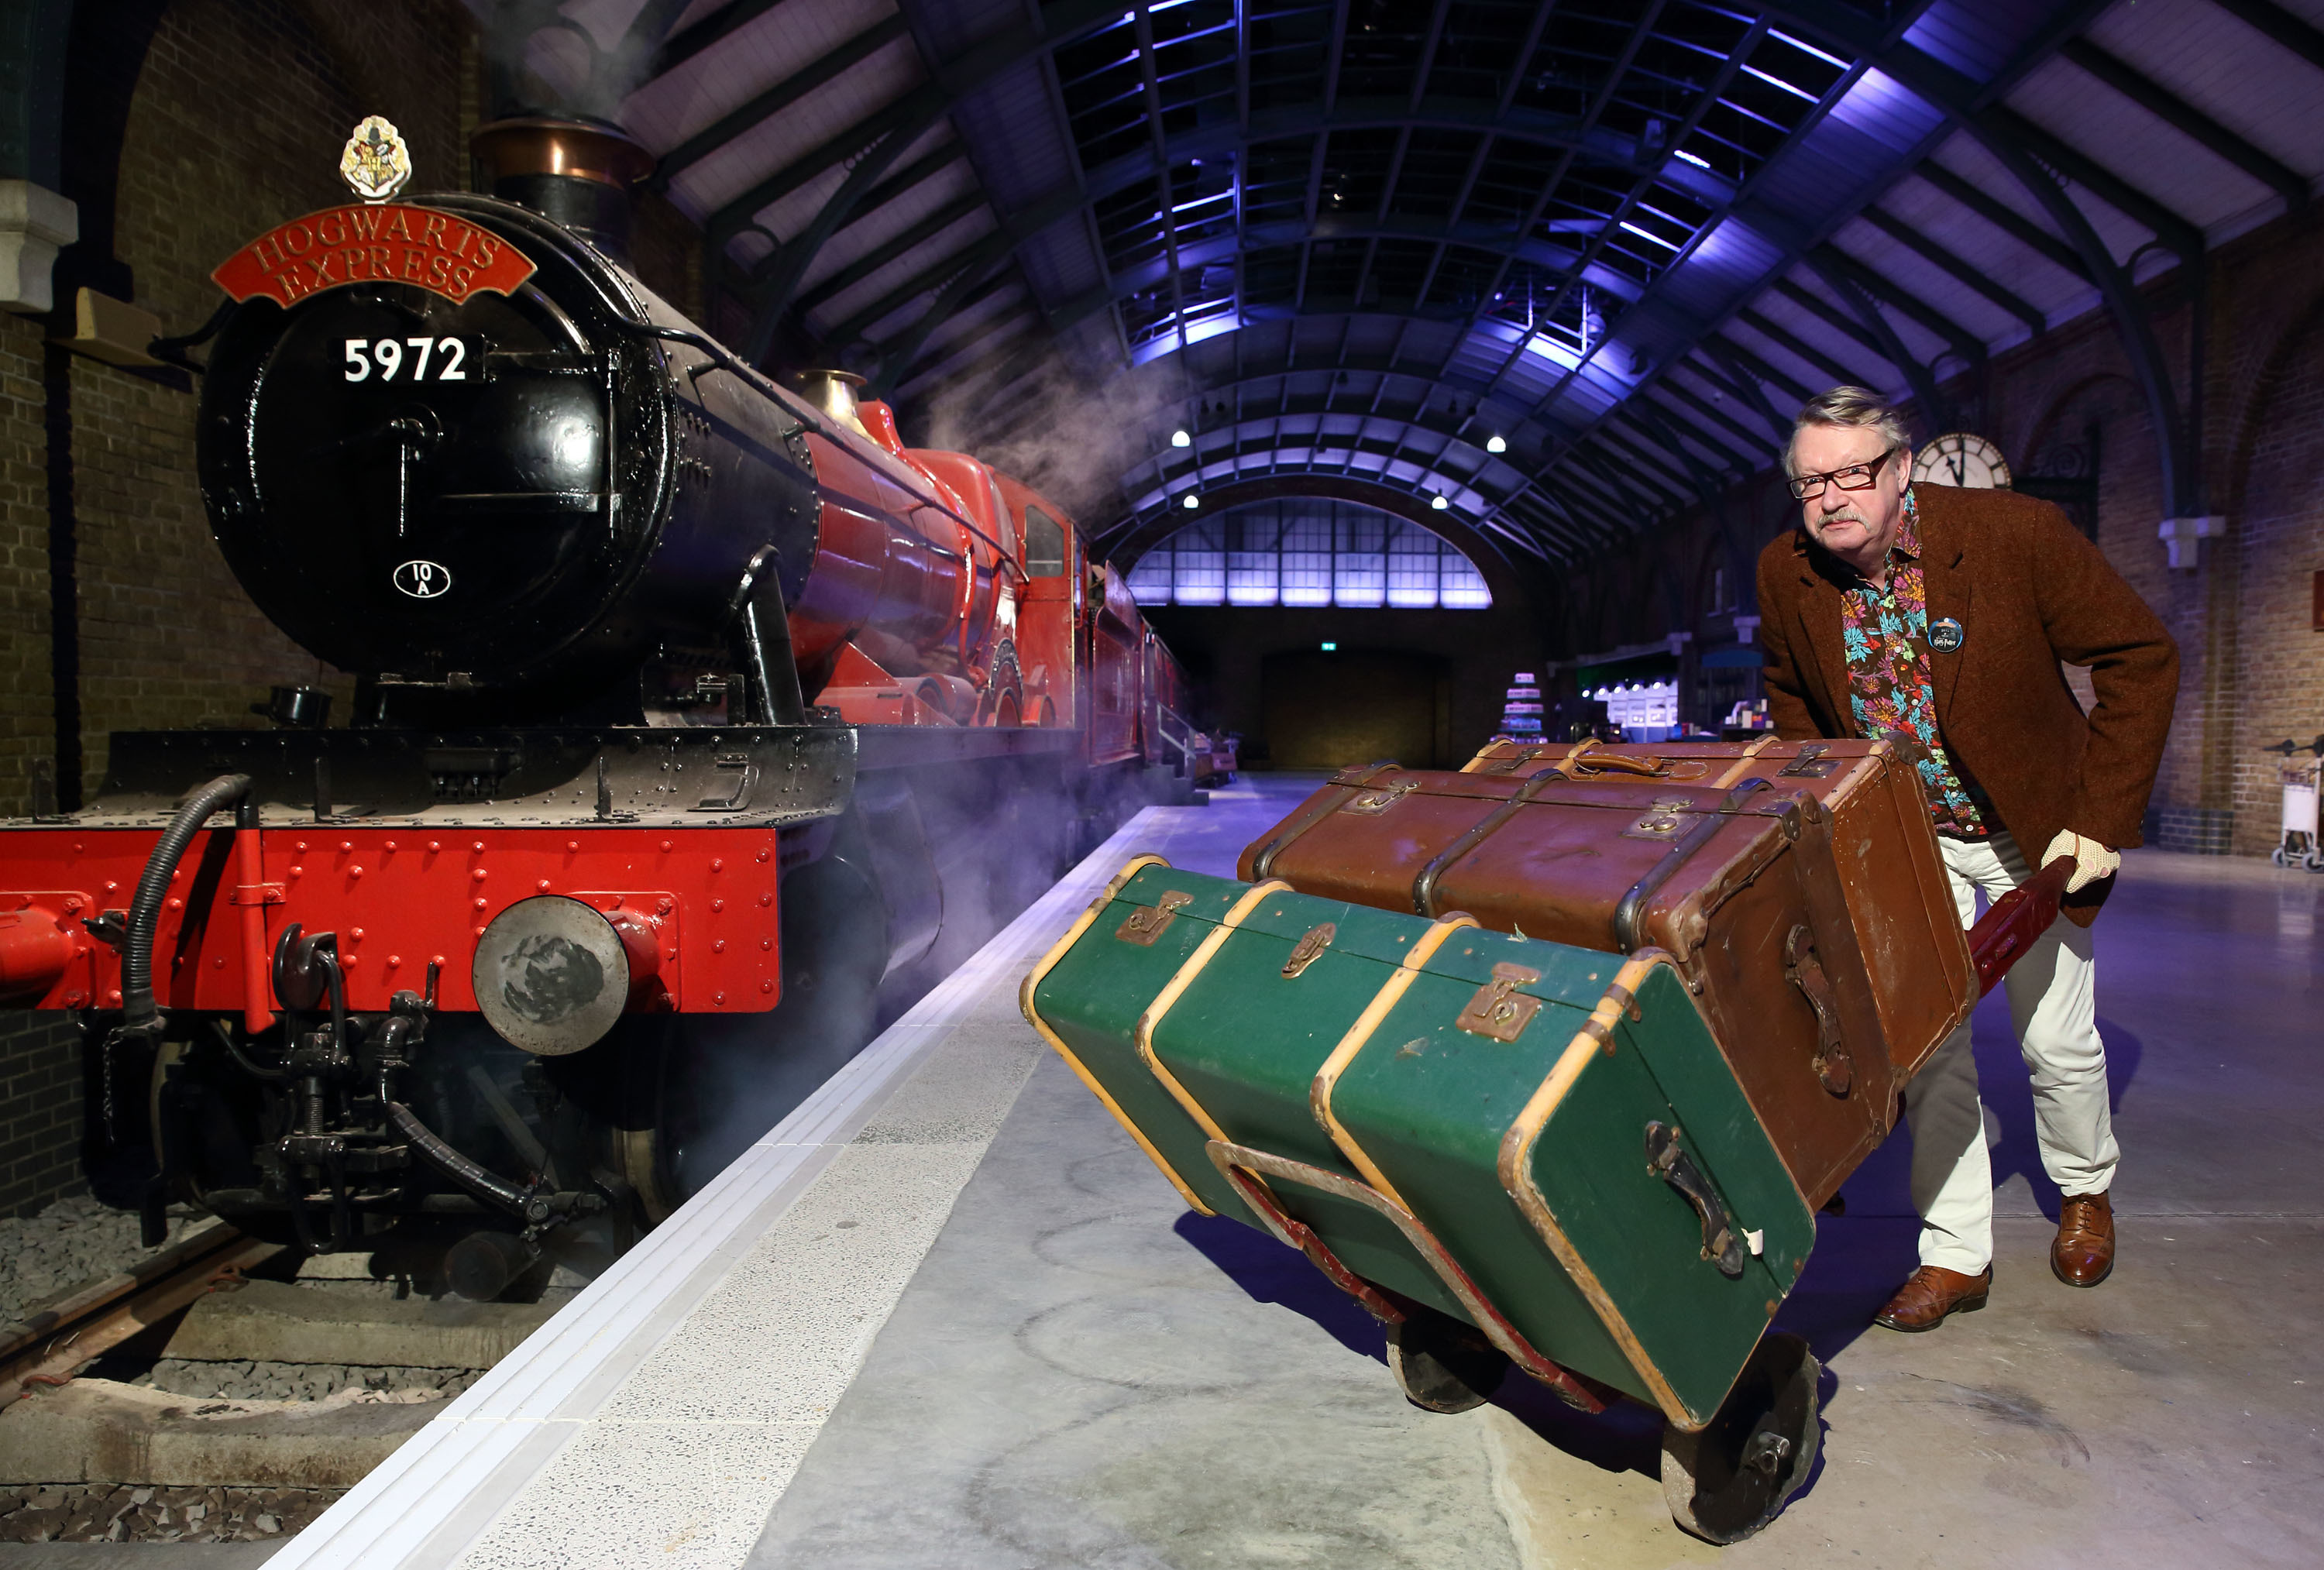 The Making of Harry Potter offers a sneak peek of its new permanent featuring the original Hogwarts Express and recreation of Platform 9 3⁄4